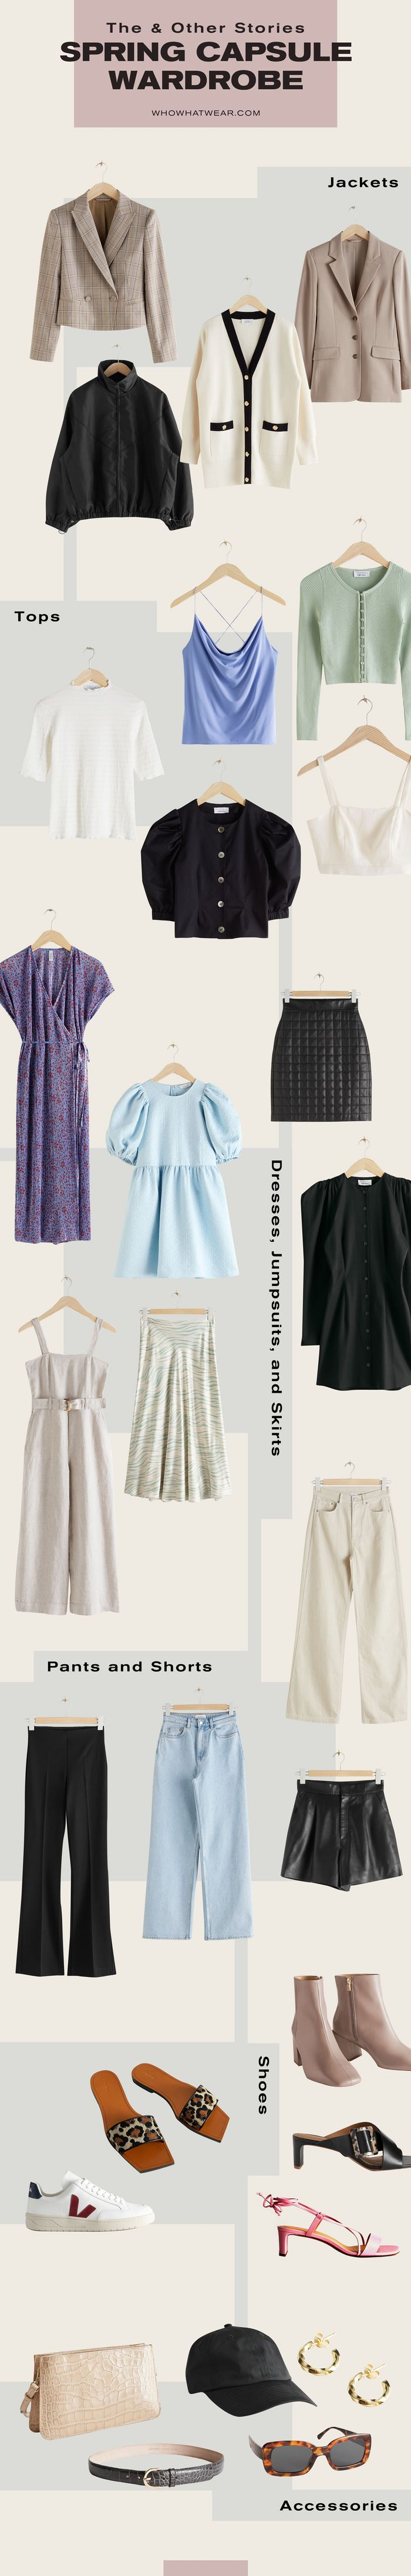 & Other Stories Spring Capsule Wardrobe